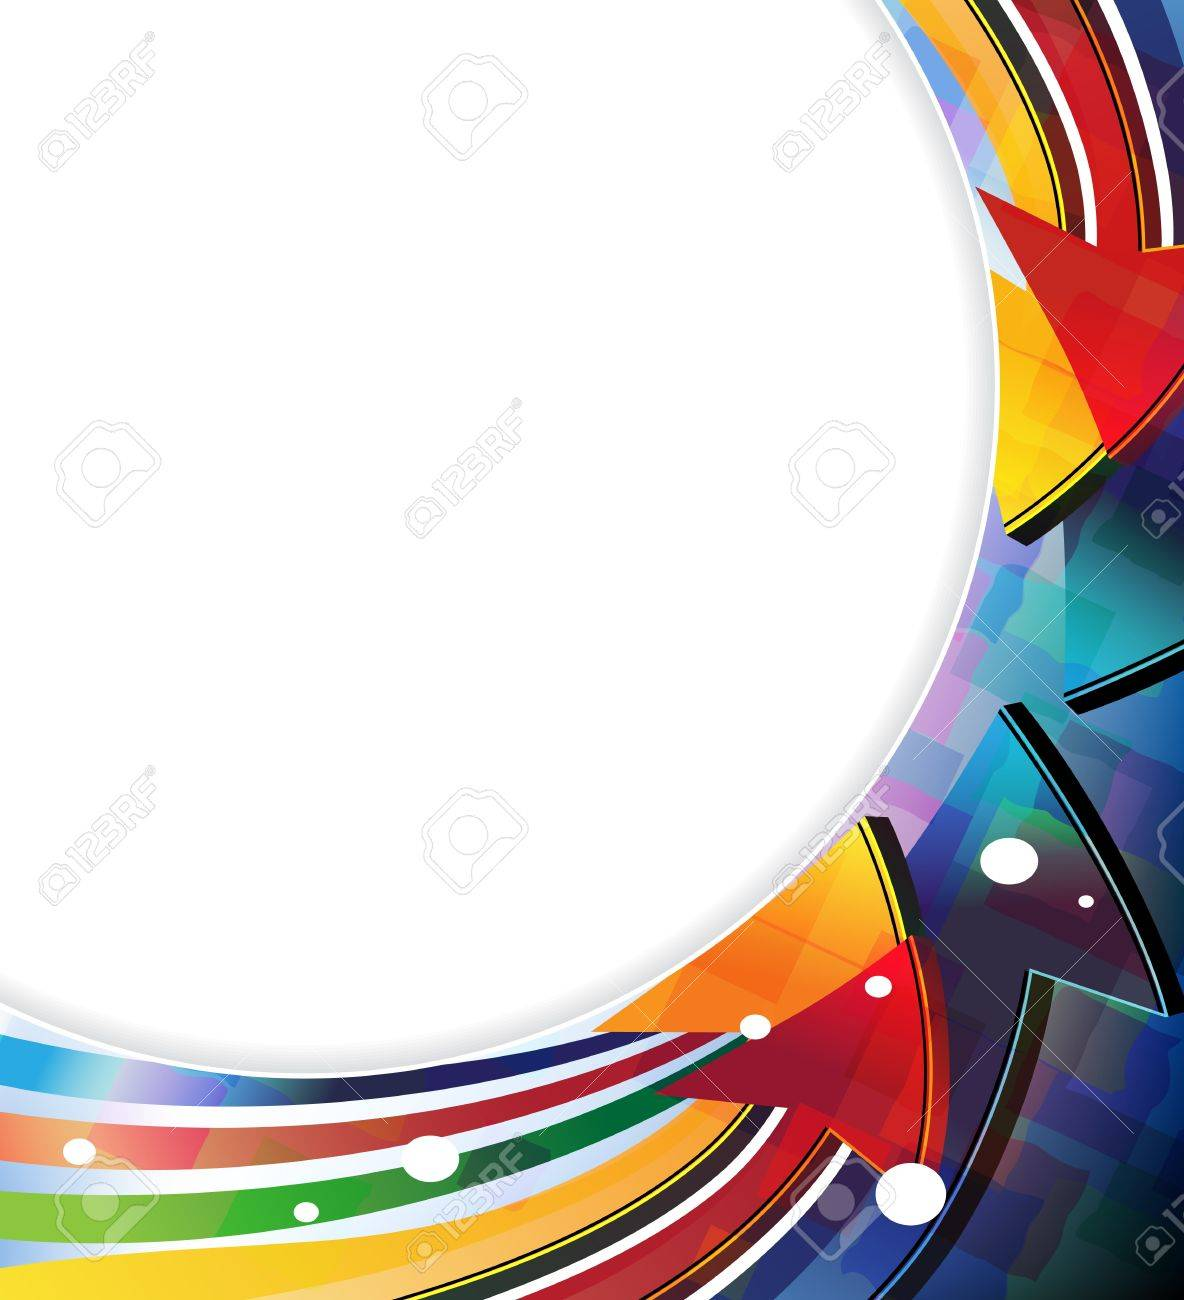 Color arrows. Abstract round border with place for text - 21699686